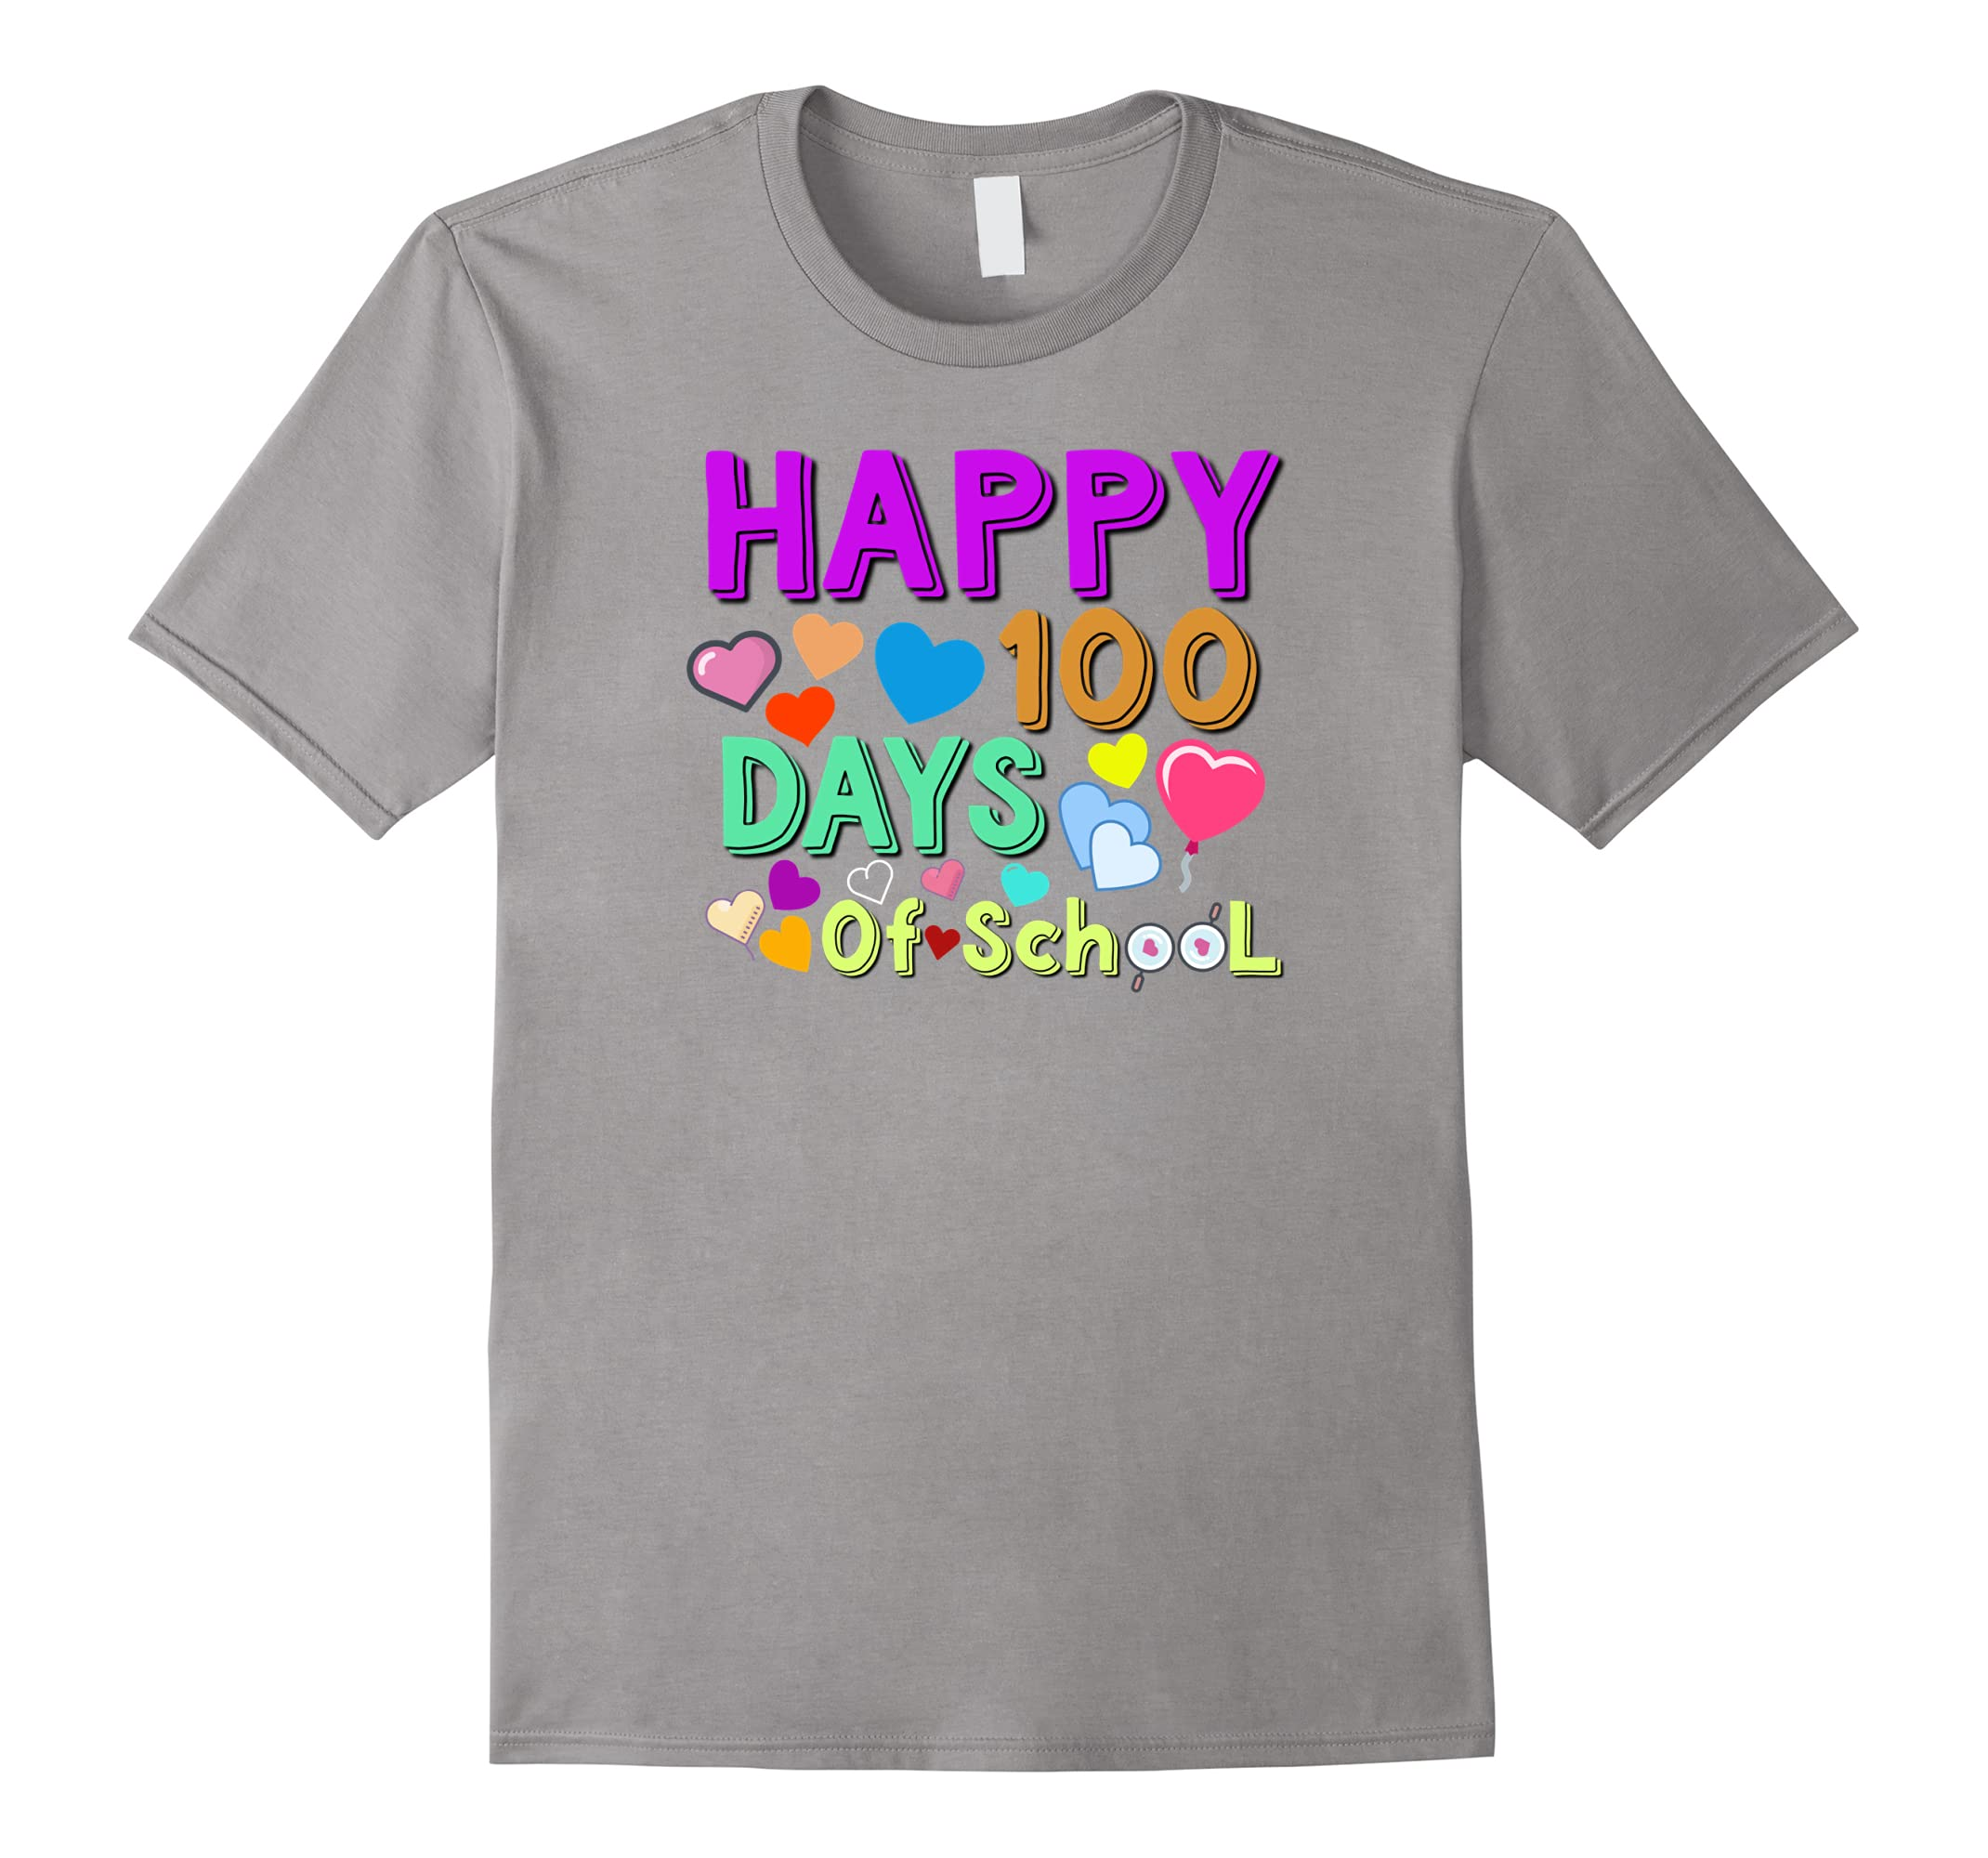 100th Day of School Shirt | Happy 100 Days Of School T-shirt-RT